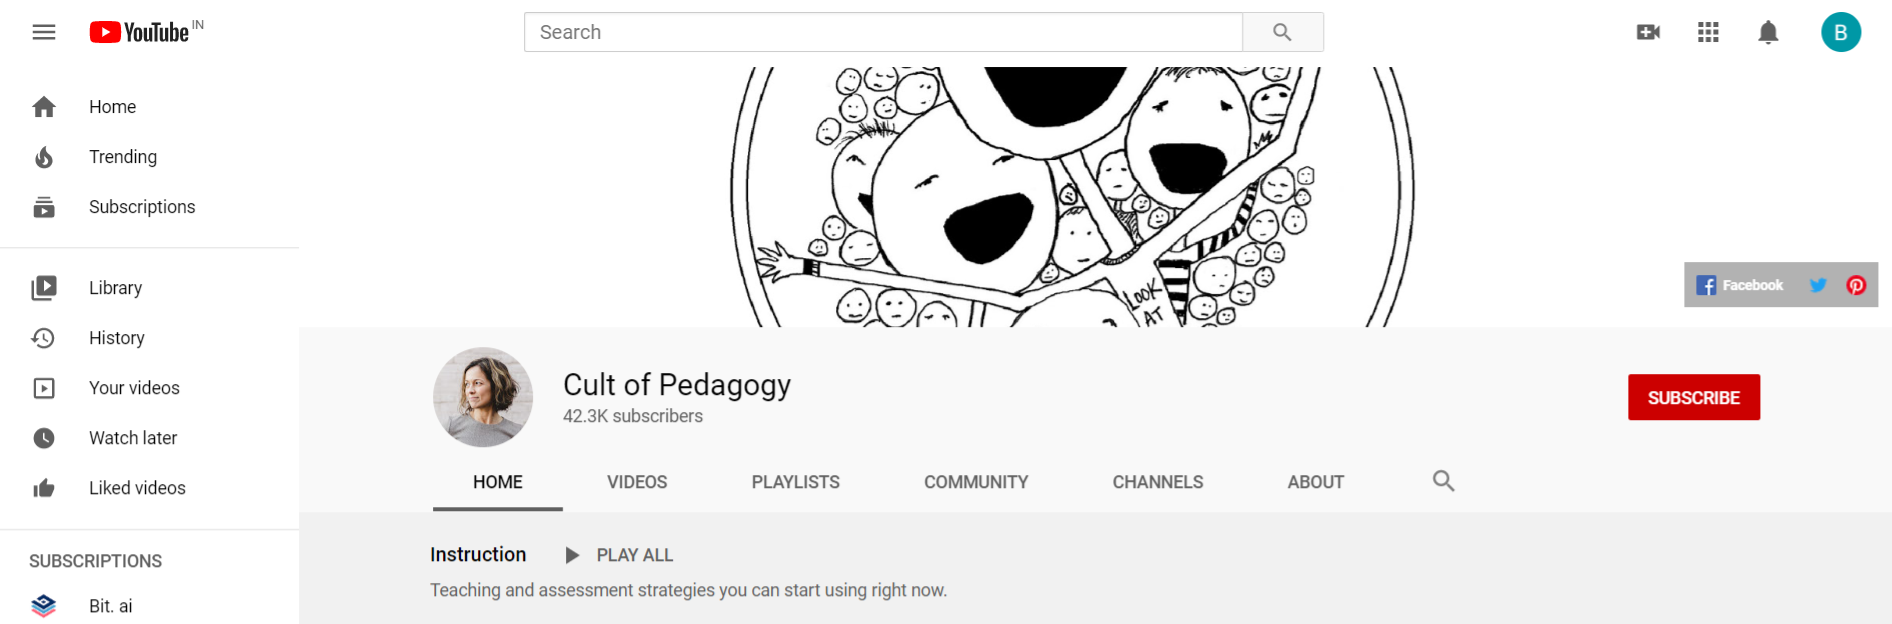 Cult of pedagogy: edtech youtube channel